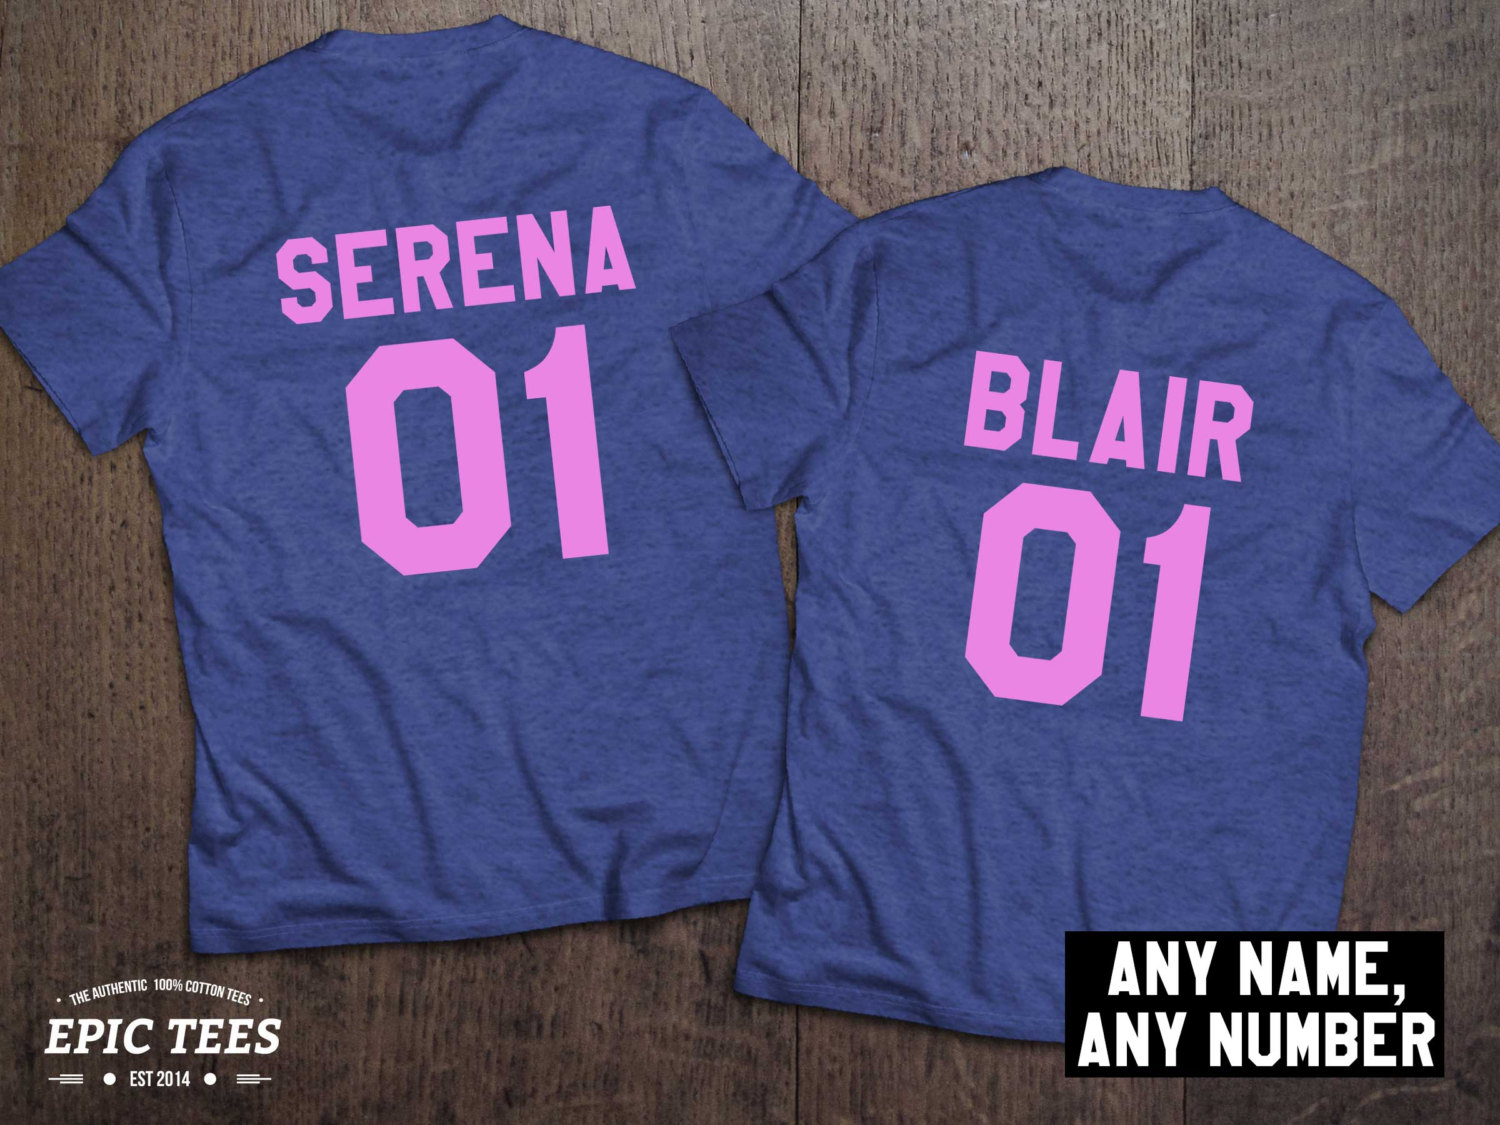 Serena Blair t-shirts, Bff shirts, Set of two matching shirts for best friend, UNISEX